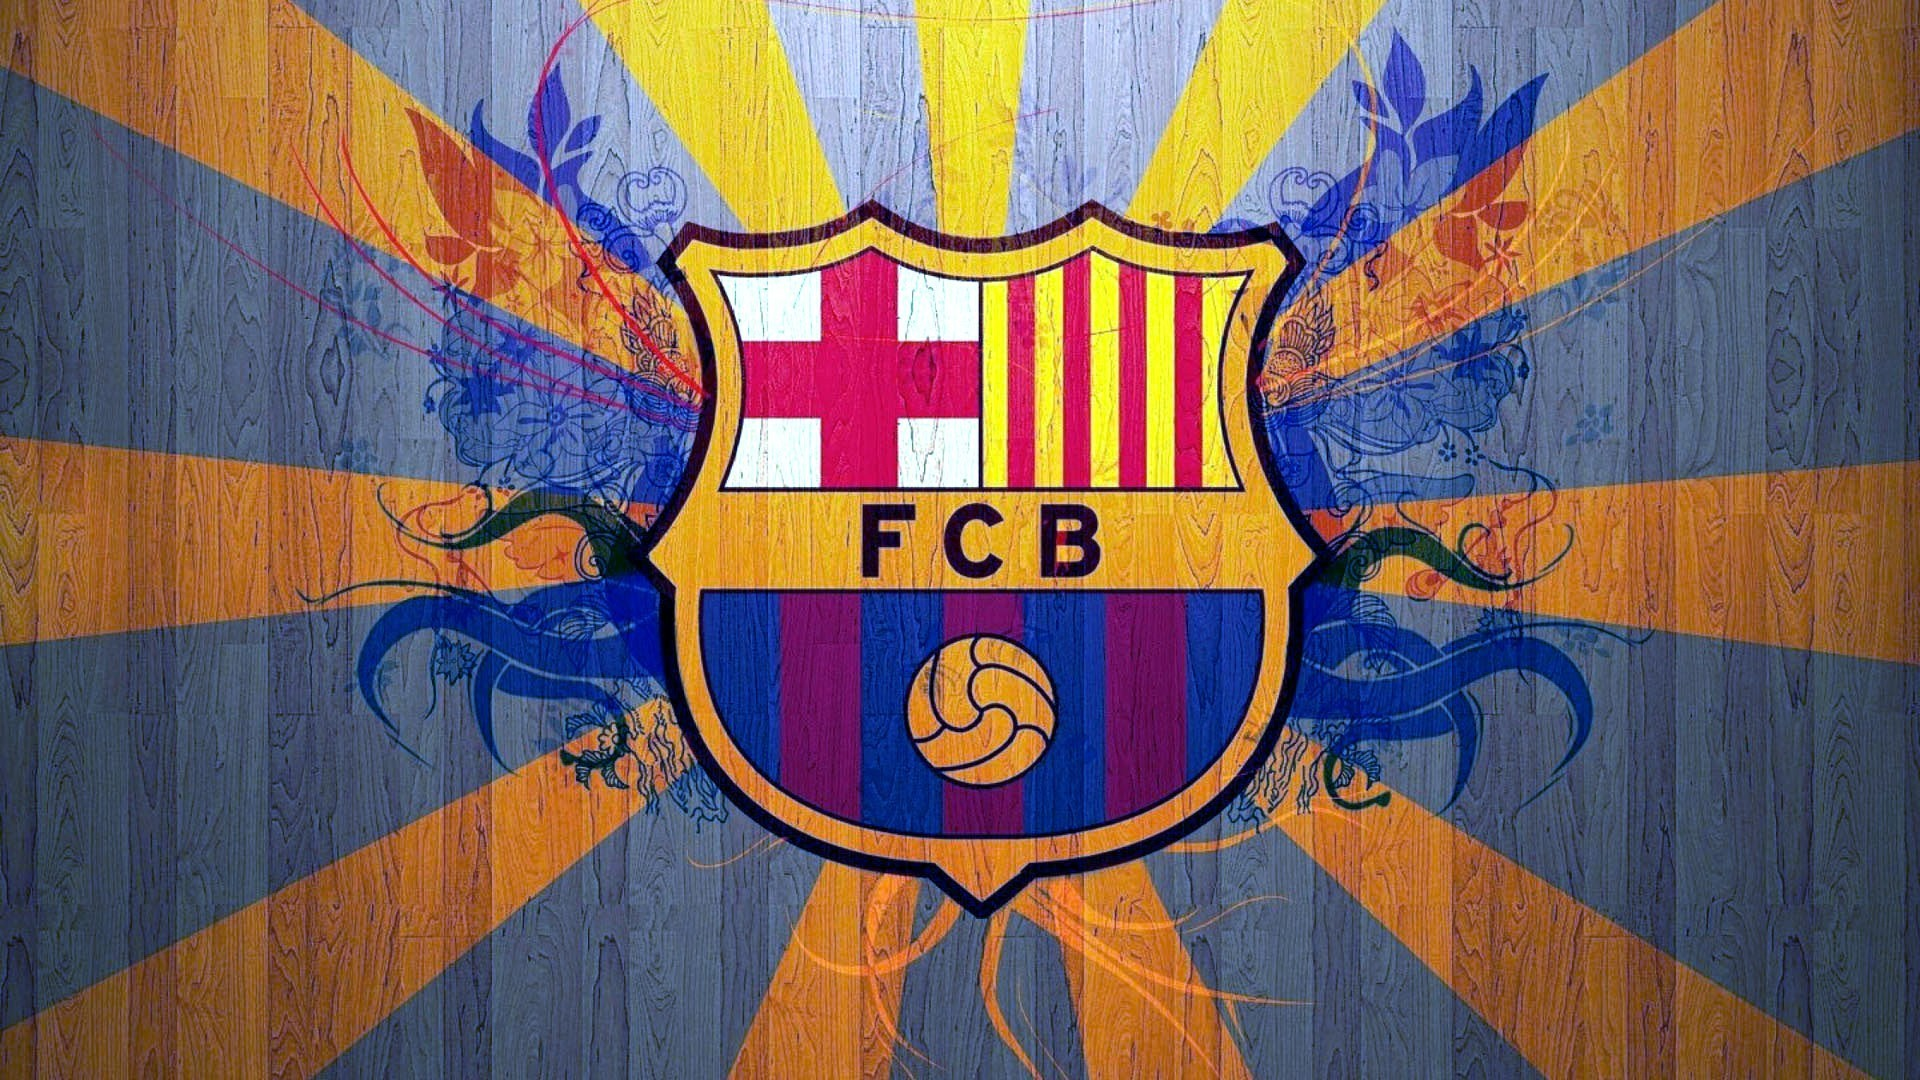 1920x1080 free desktop backgrounds for fc barcelona - fc barcelona category